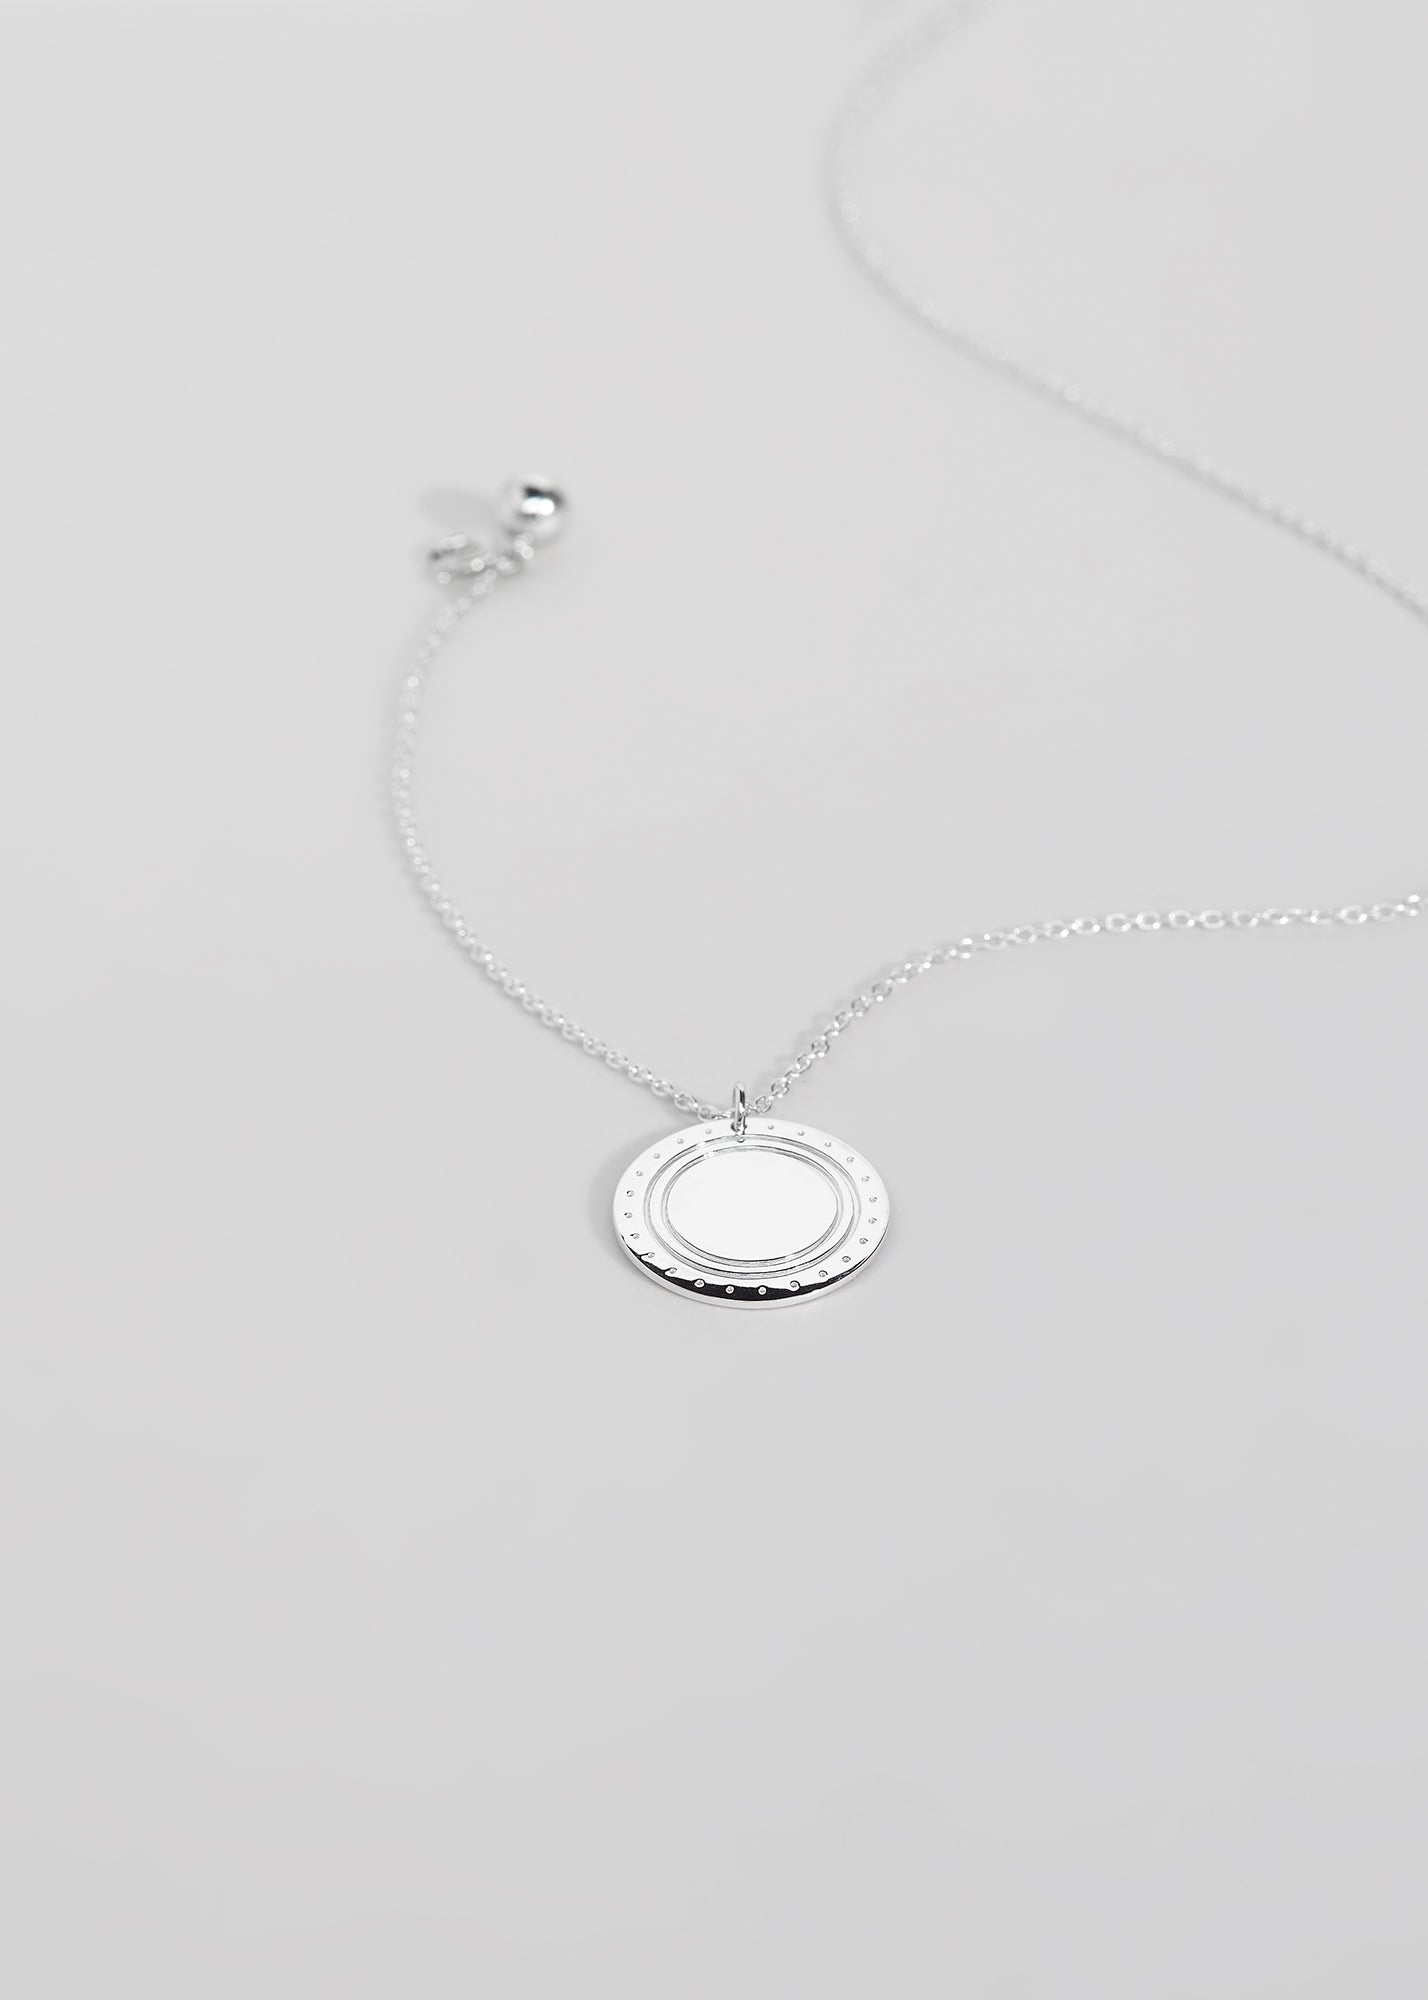 Logo Necklace - Trine Tuxen Jewelry